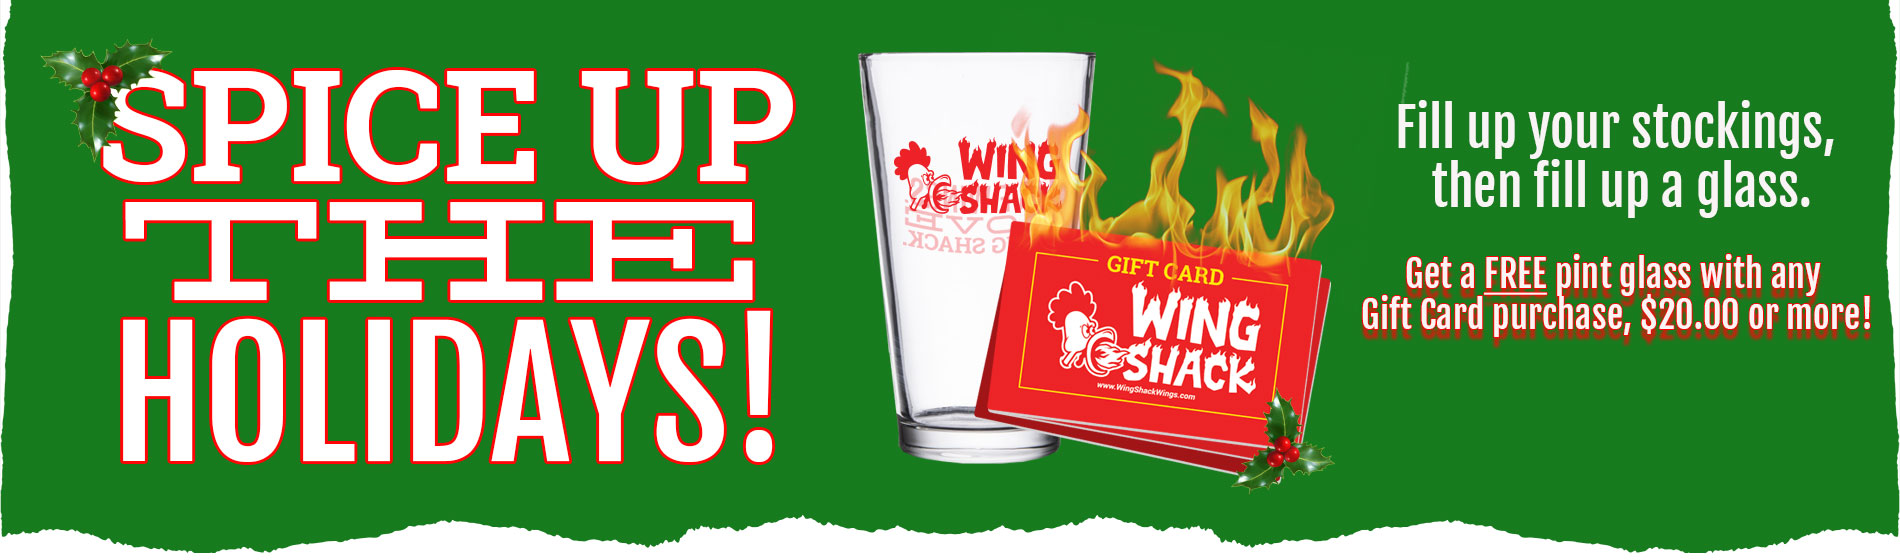 Wing shack coupons